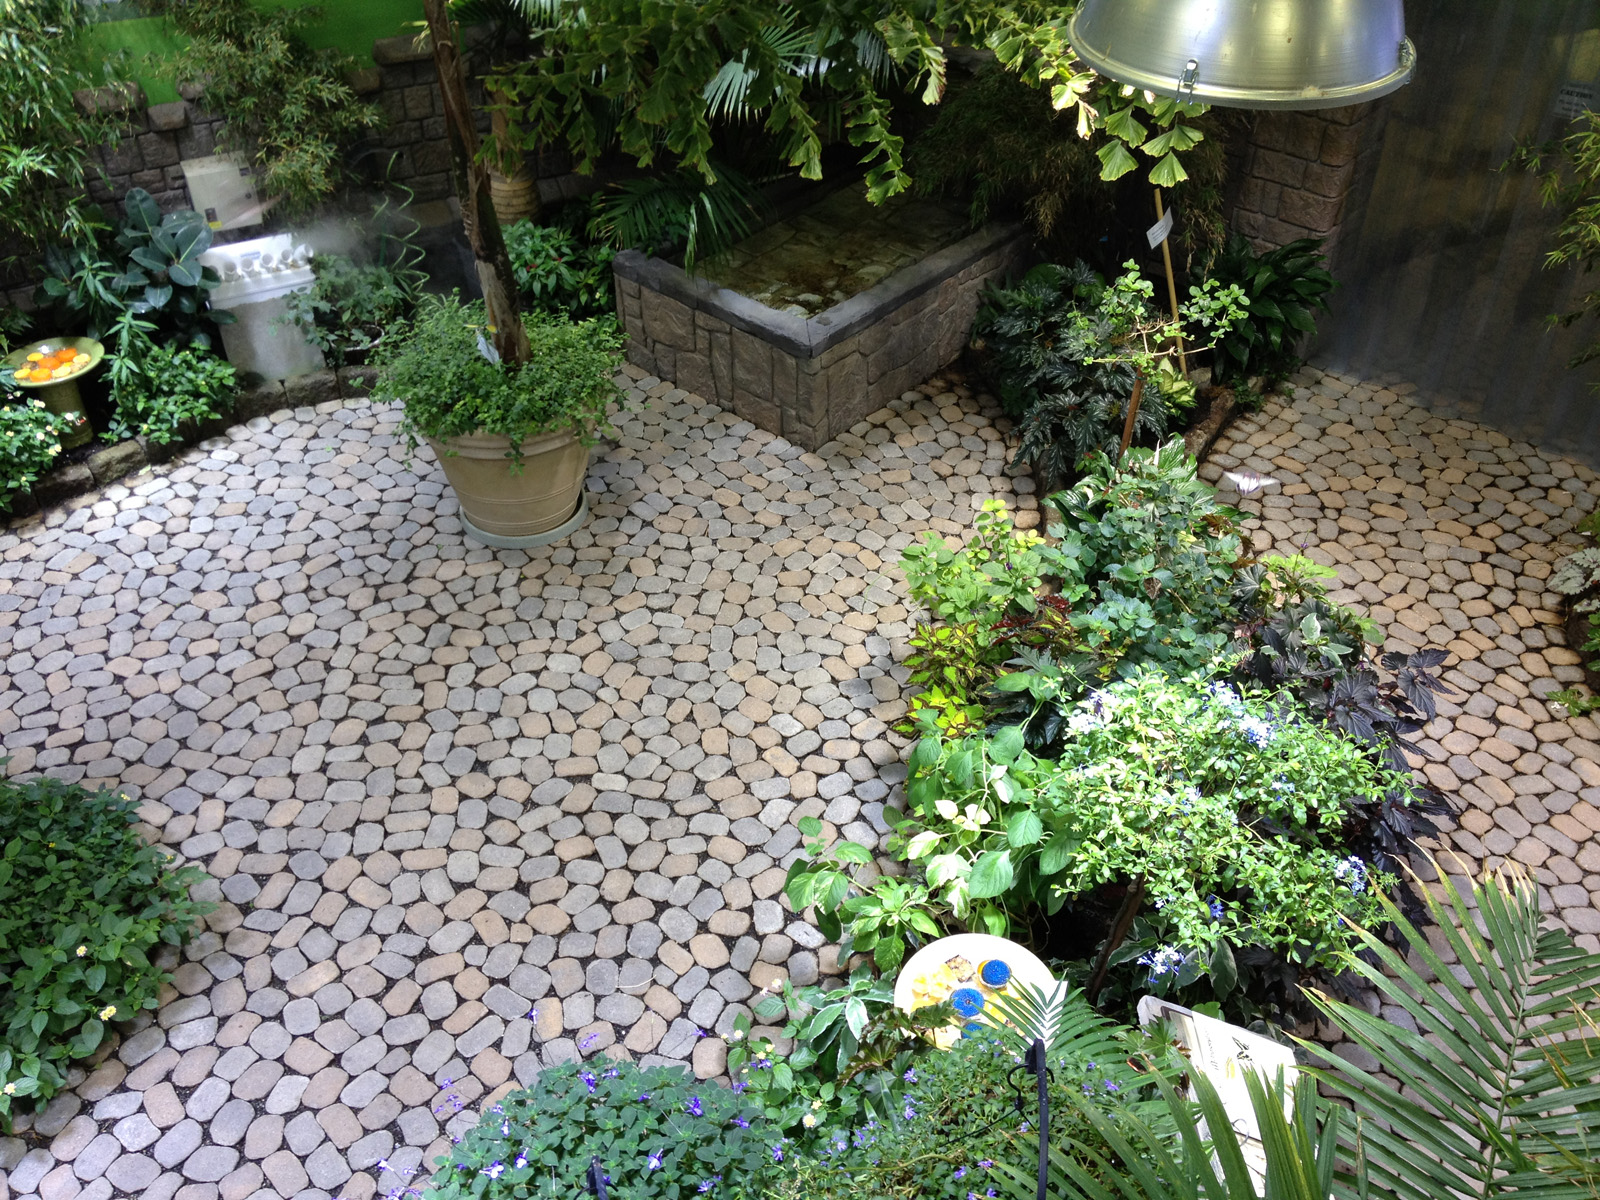 Professional butterfly garden planting landscape design company in Long Island, NY